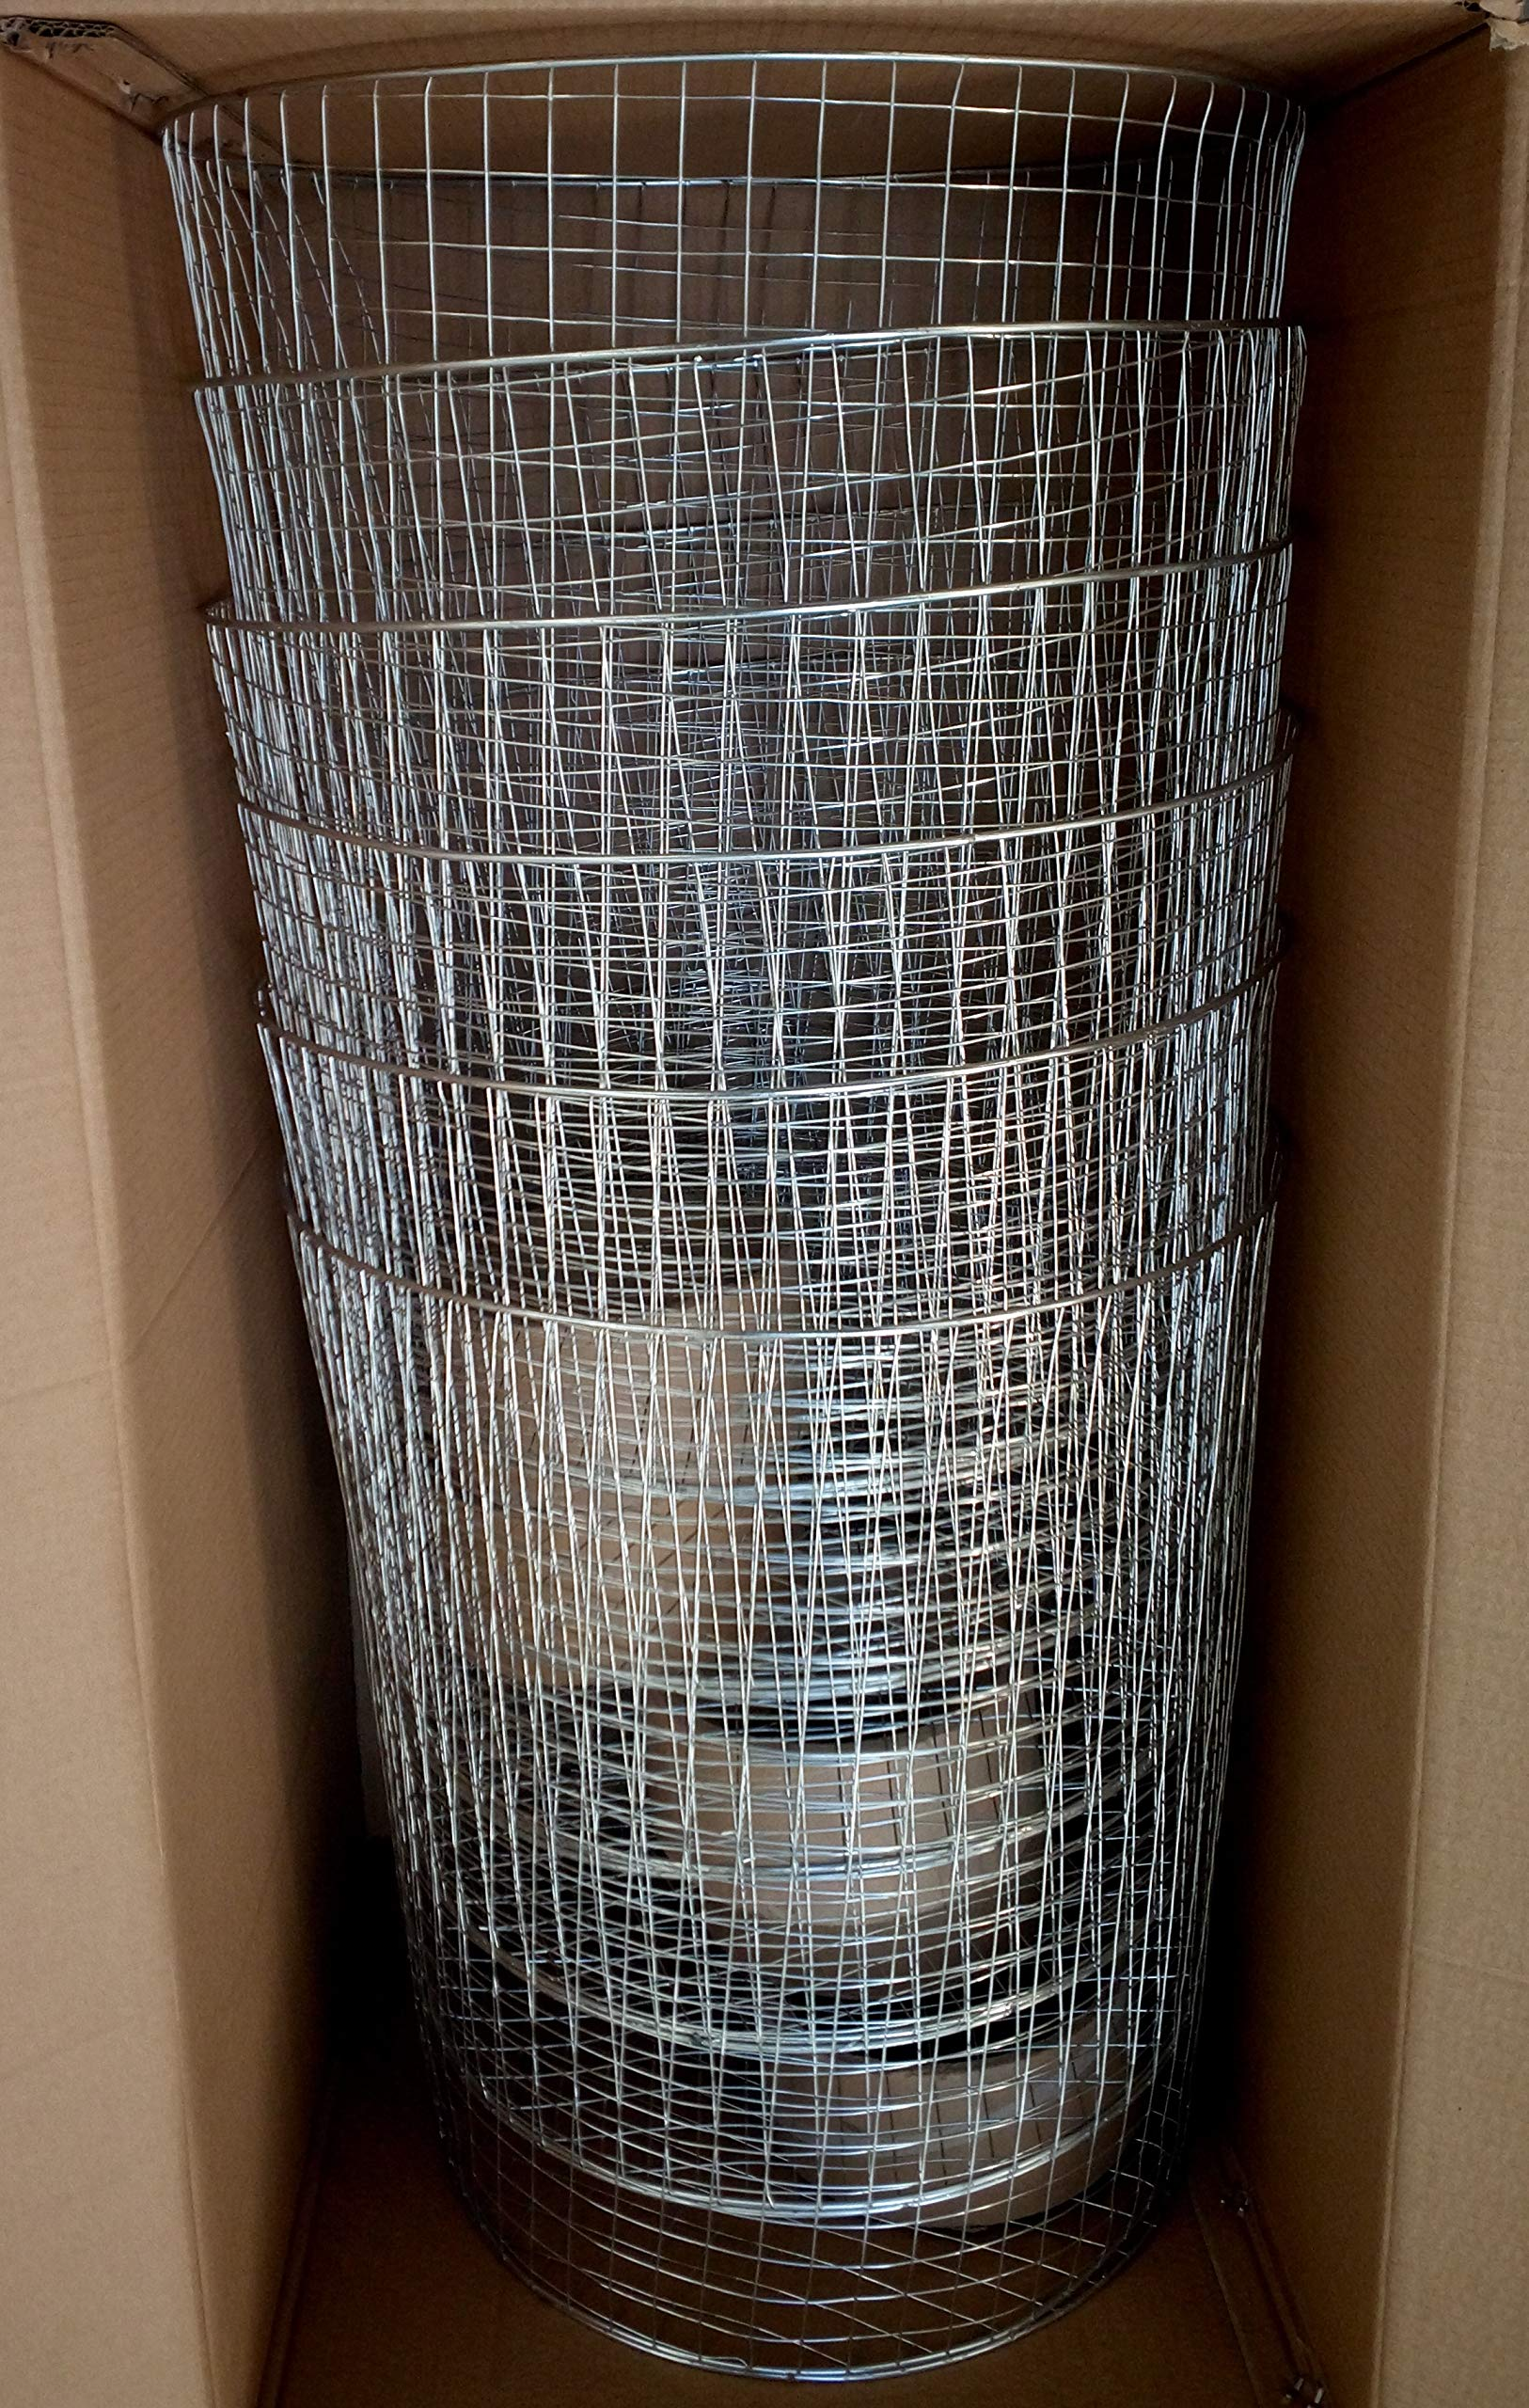 Gophers Limited Stainless Steel Wire Gopher/Mole Barrier Basket, 15 Gallon Size, 1 Case Quantity 6 Baskets by Gophers Limited